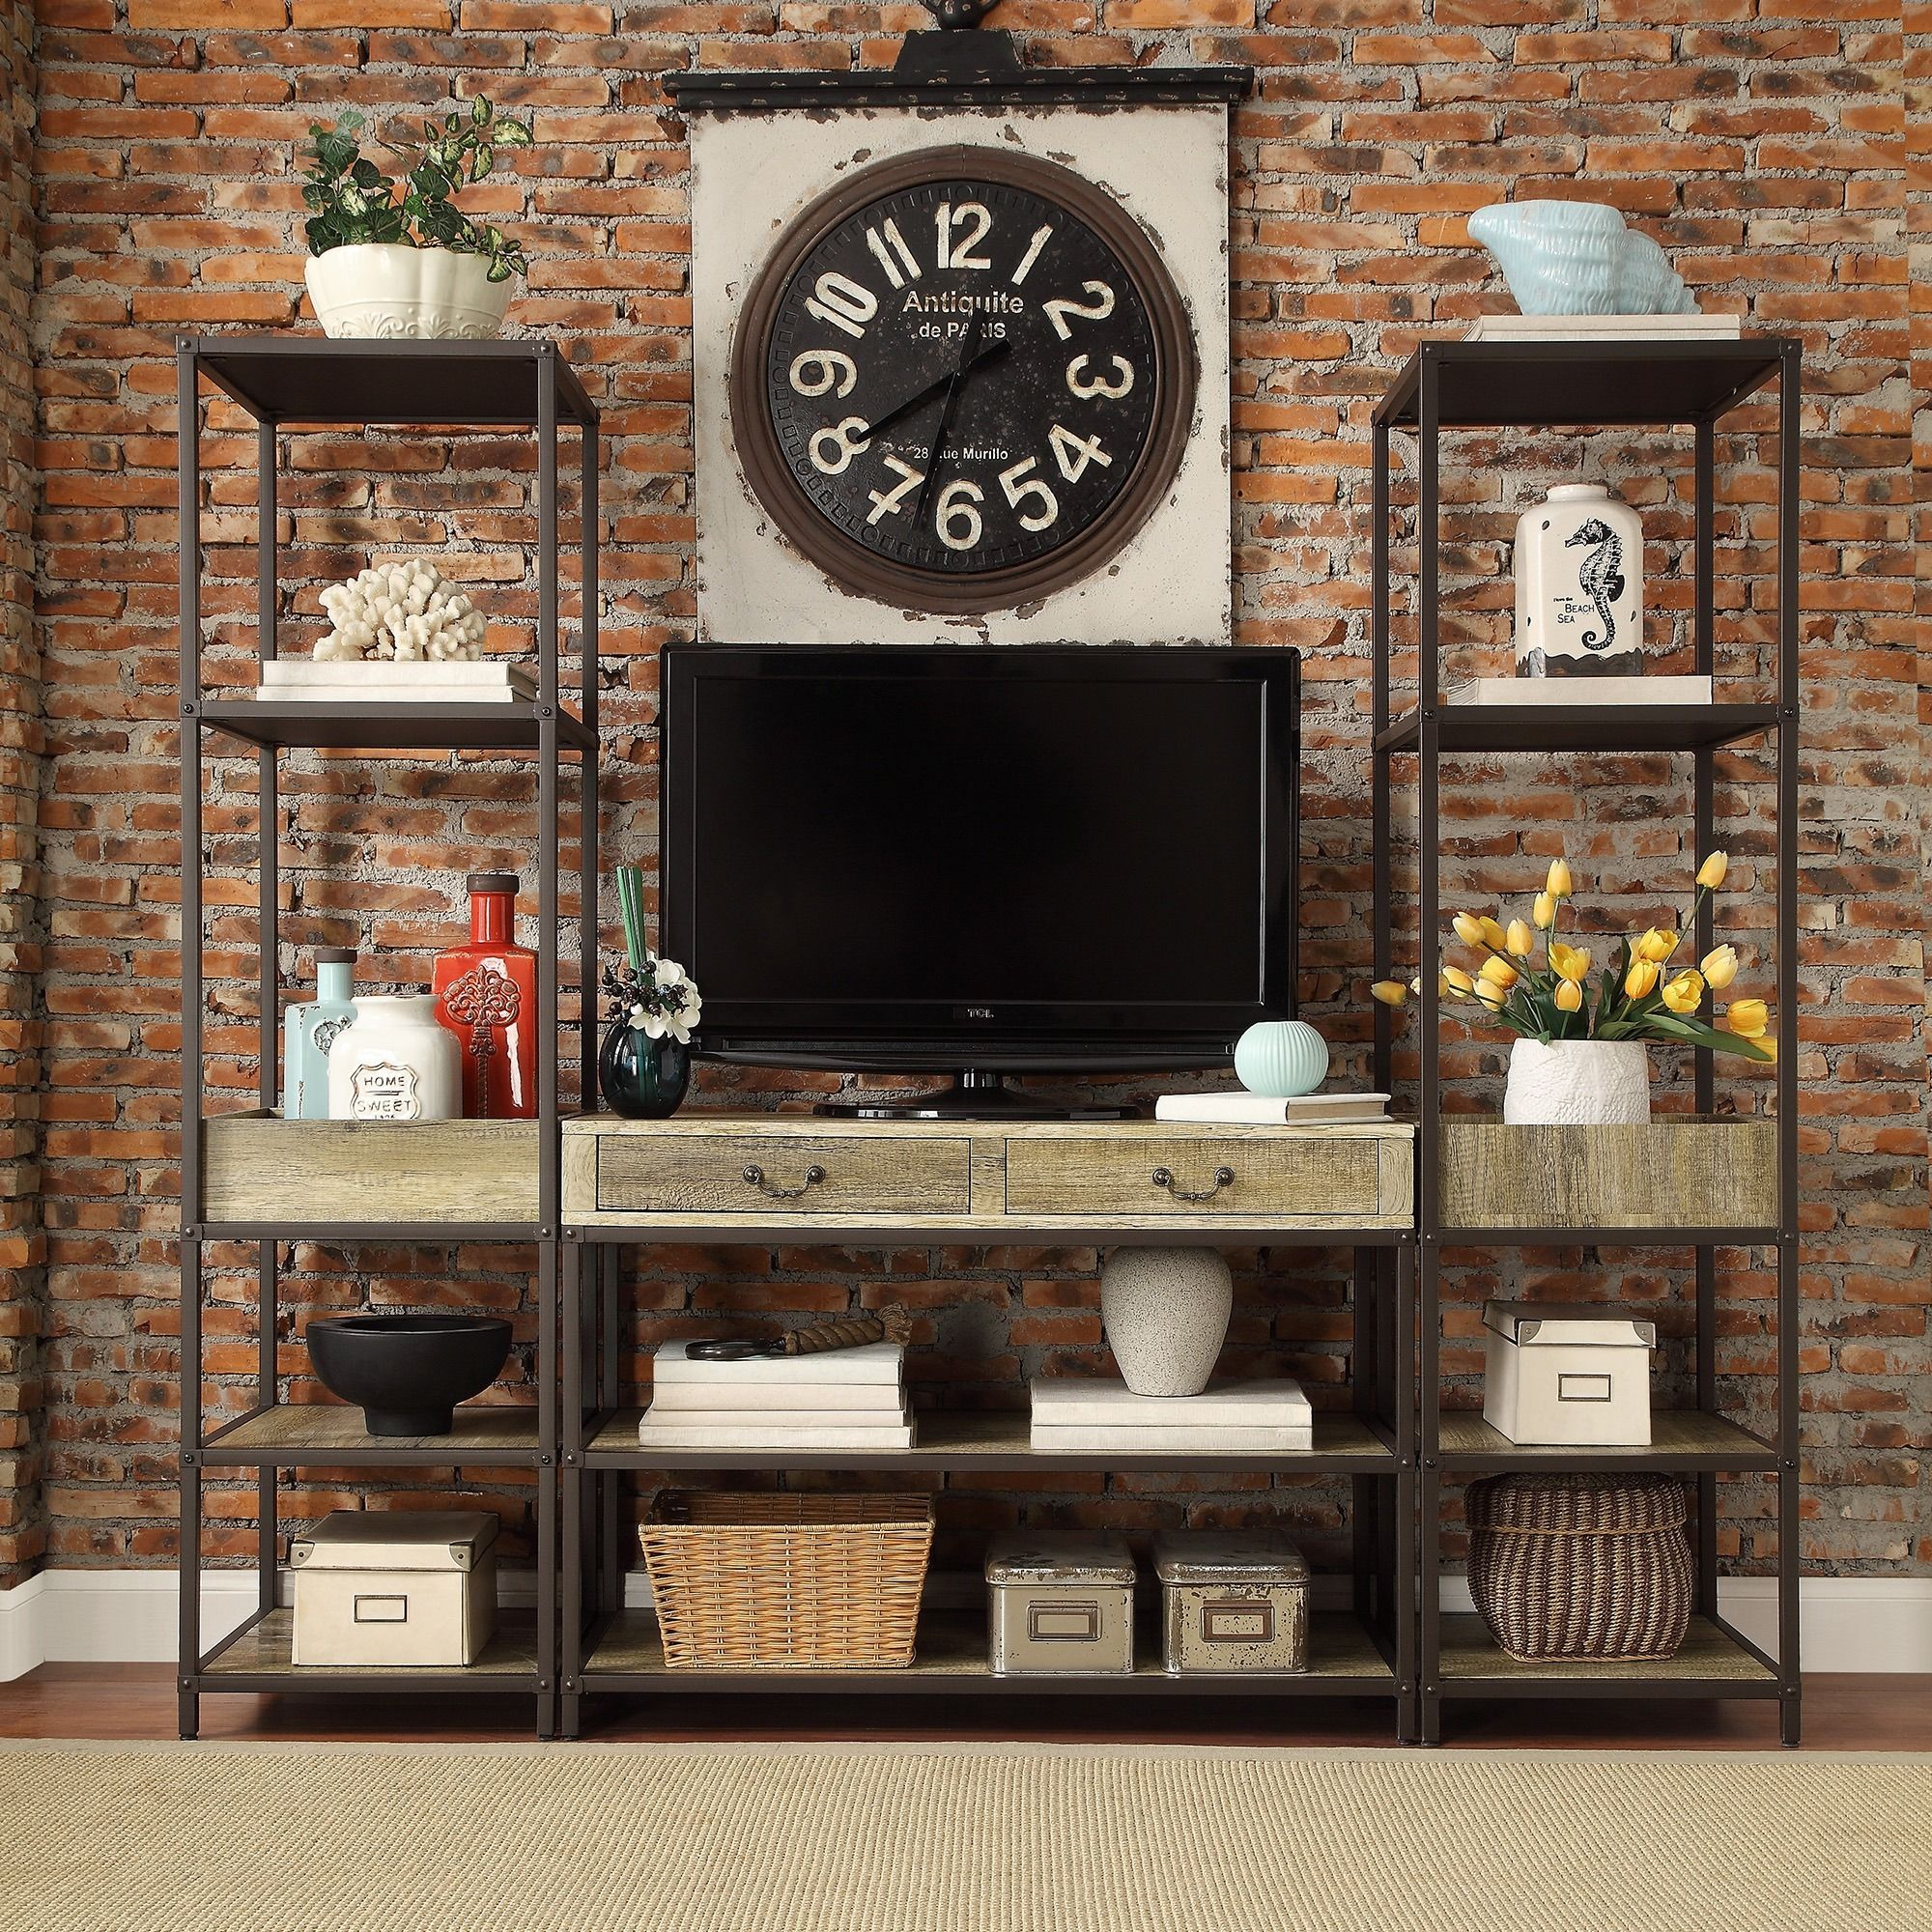 Update the look of your living room with the Sadie Industrial Rustic Open  Shelf Media Console. This console features a stylish rustic design with two  media ...